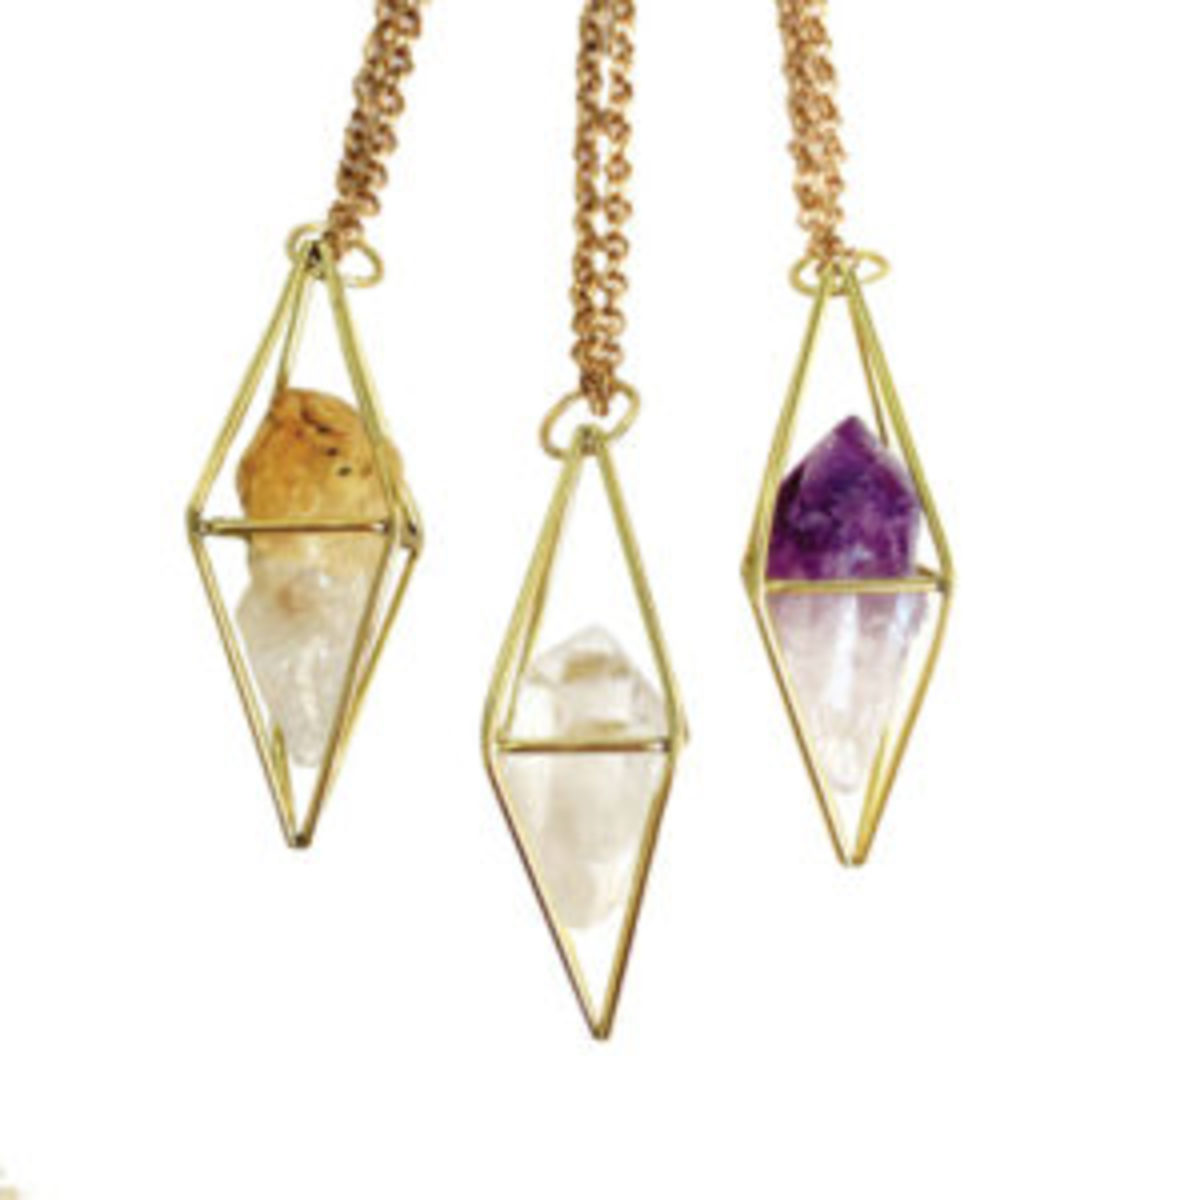 Caged crystal amulet necklaces